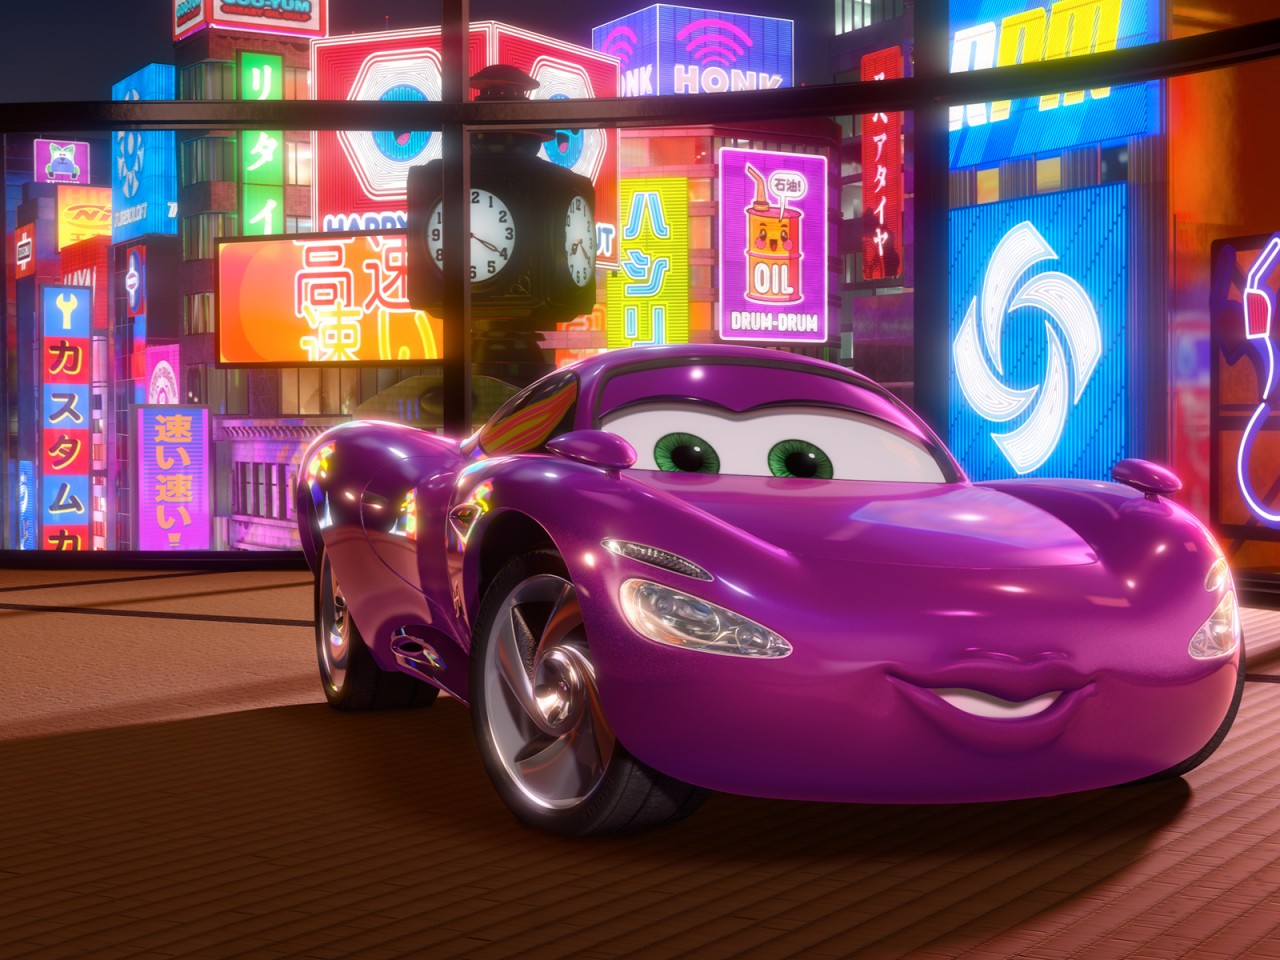 Pixar Cars Wallpaper Holley Shiftwell In Cars 2 Movie Wallpapers Hd